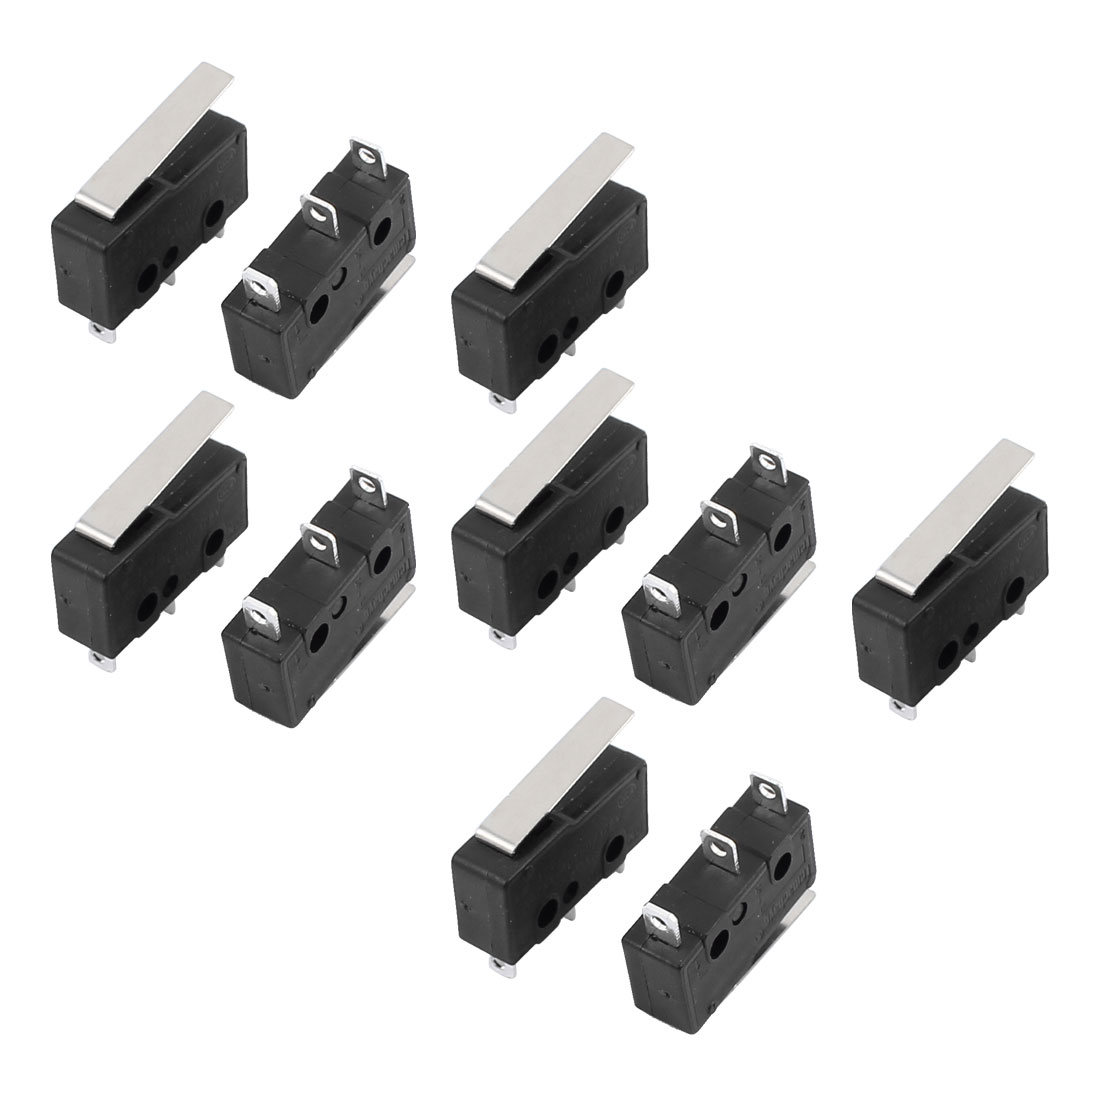 10Pcs AC250/125V 3A 3P Momentary 18mm Lever Arm Micro Switch KW12-1